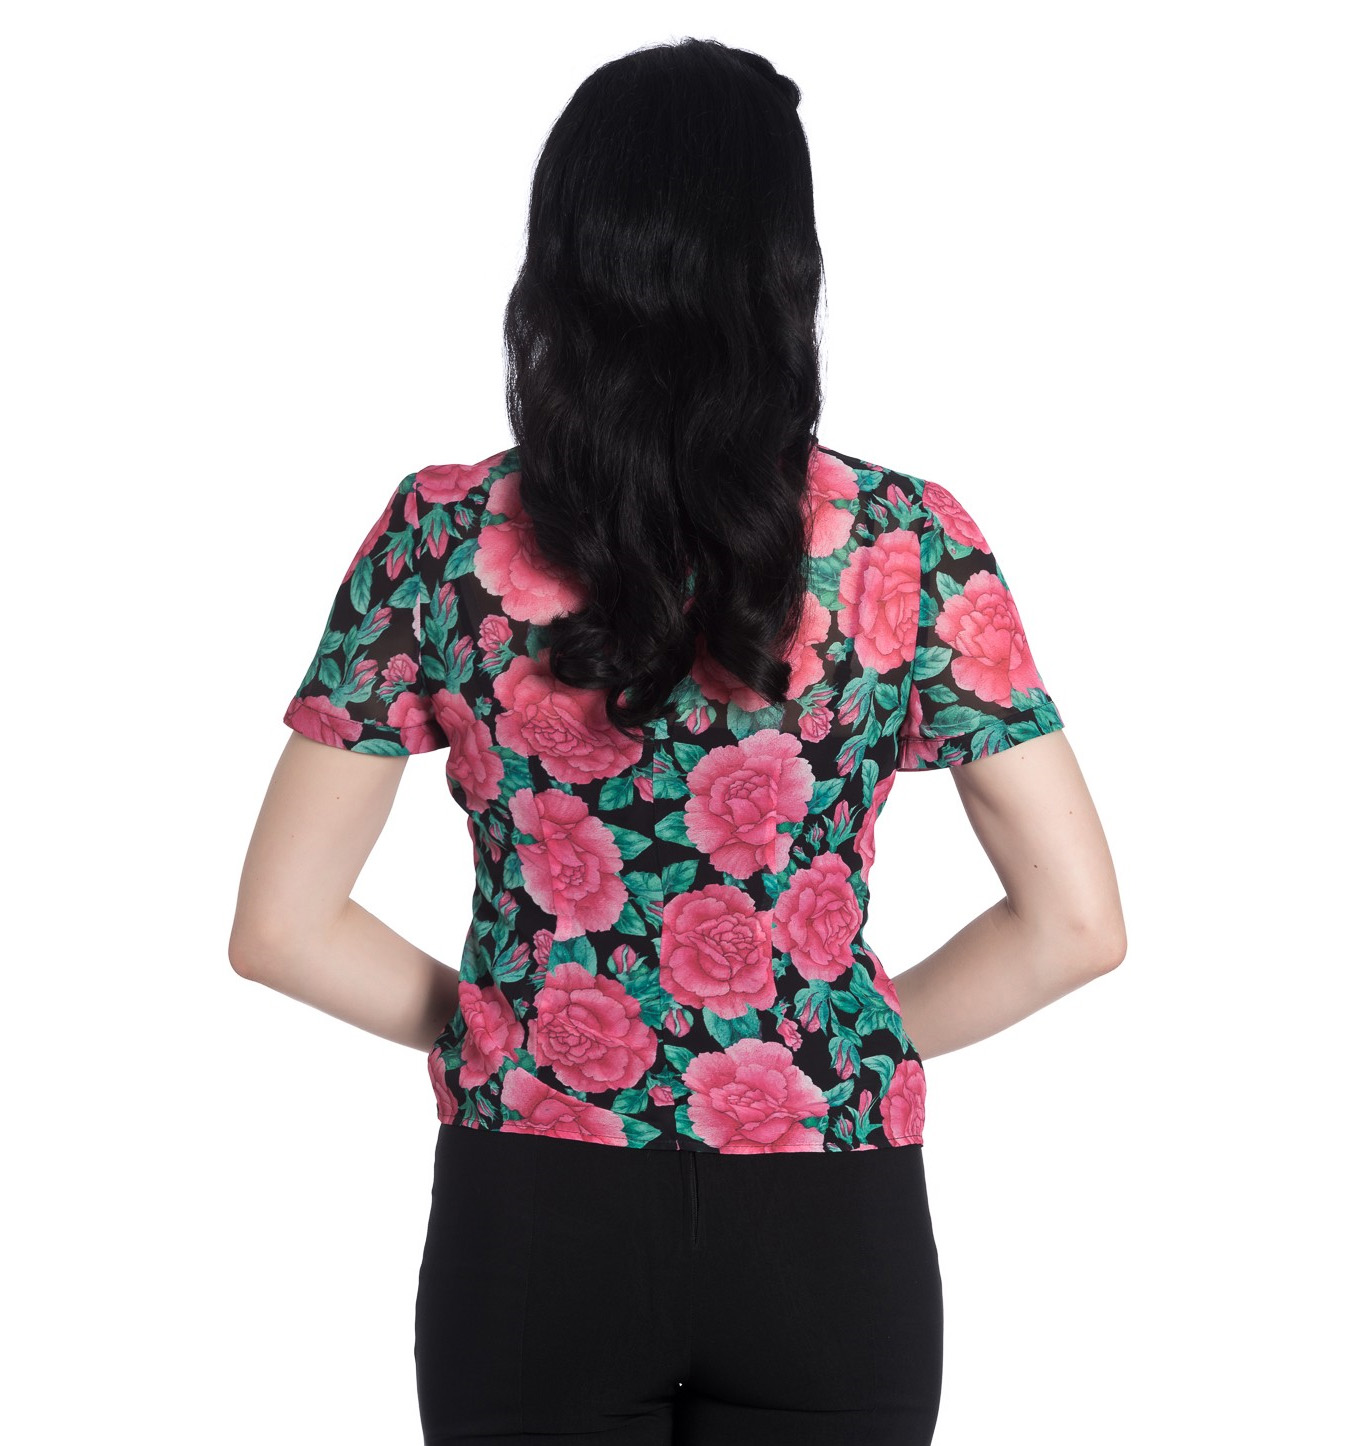 Hell-Bunny-Shirt-Top-Flowers-Roses-EDEN-ROSE-Black-Pink-Blouse-All-Sizes thumbnail 13